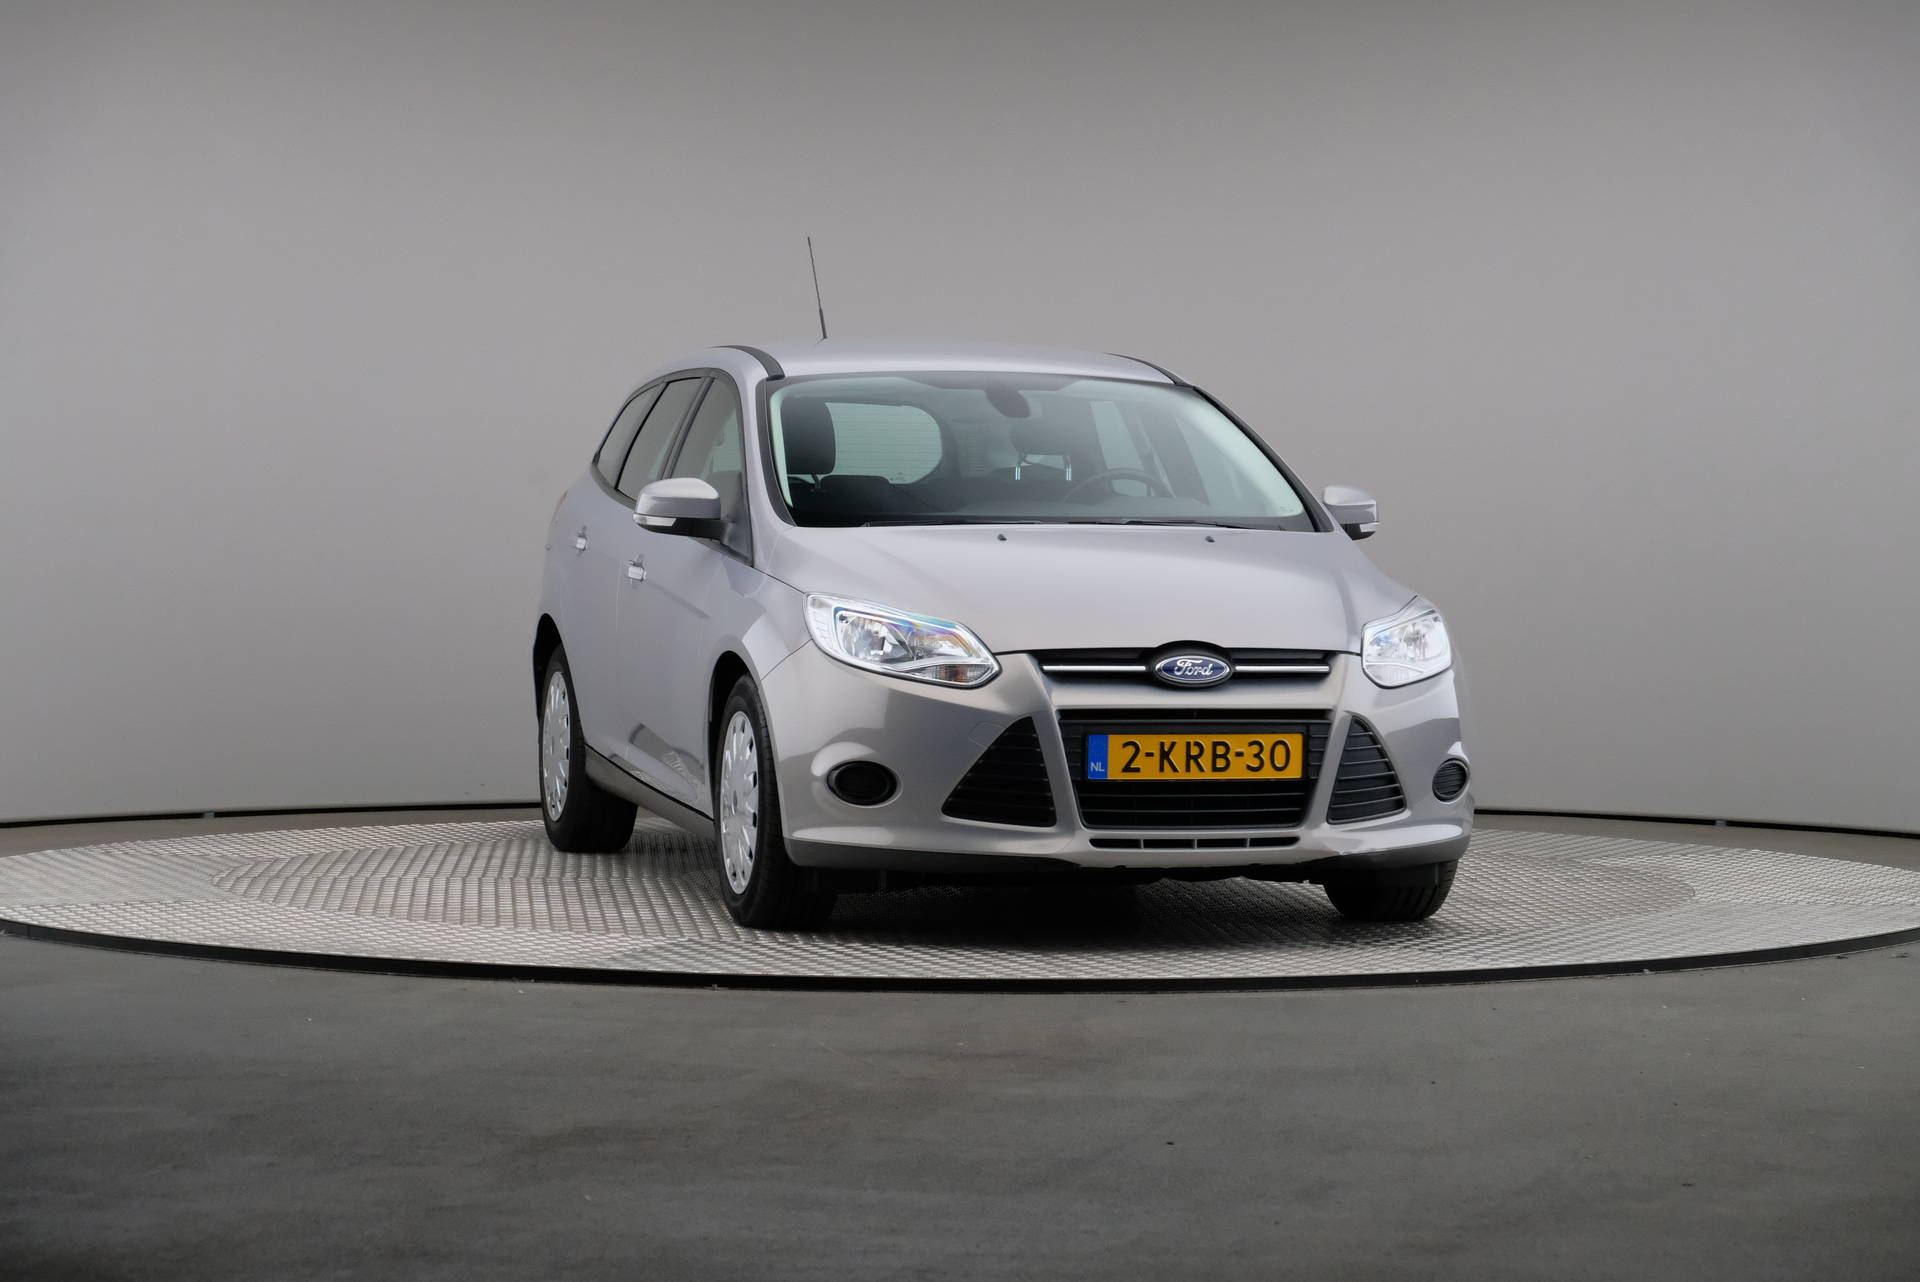 Ford Focus Wagon 1.6 TDCi ECOnetic Lease Trend, Navigatie, 360-image31